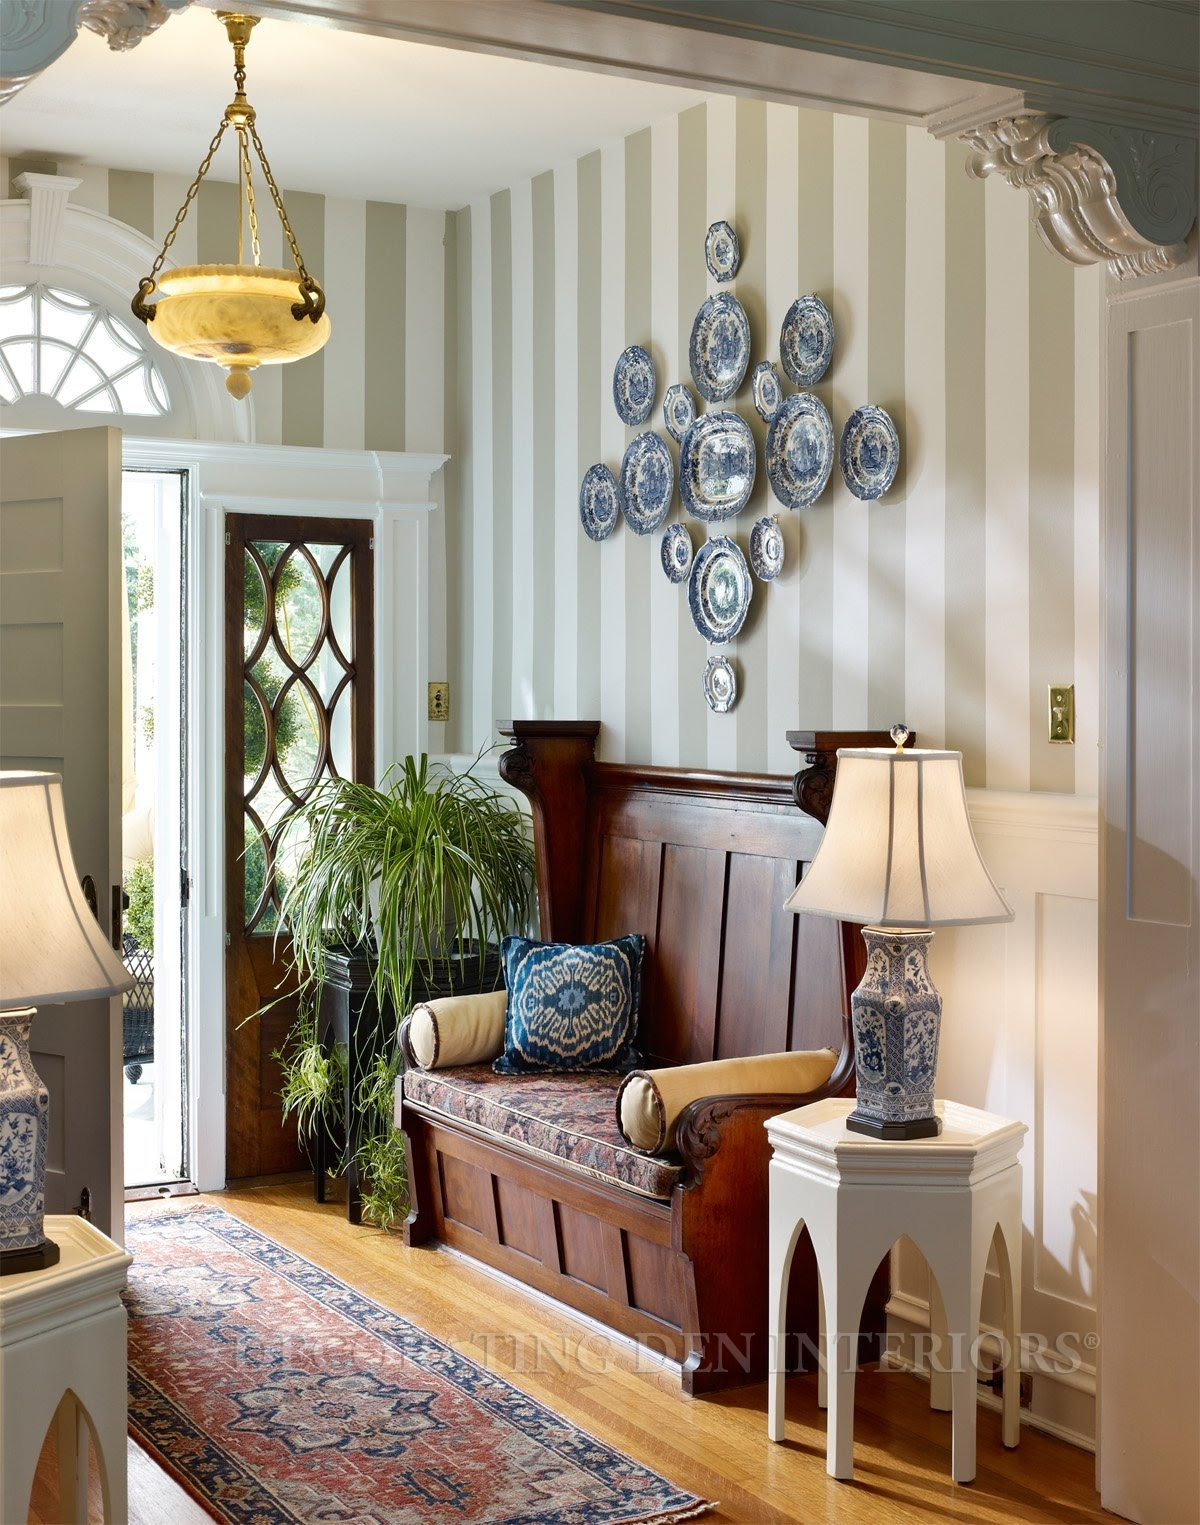 Embrace cool relaxation with contemporary coastal interior design ...